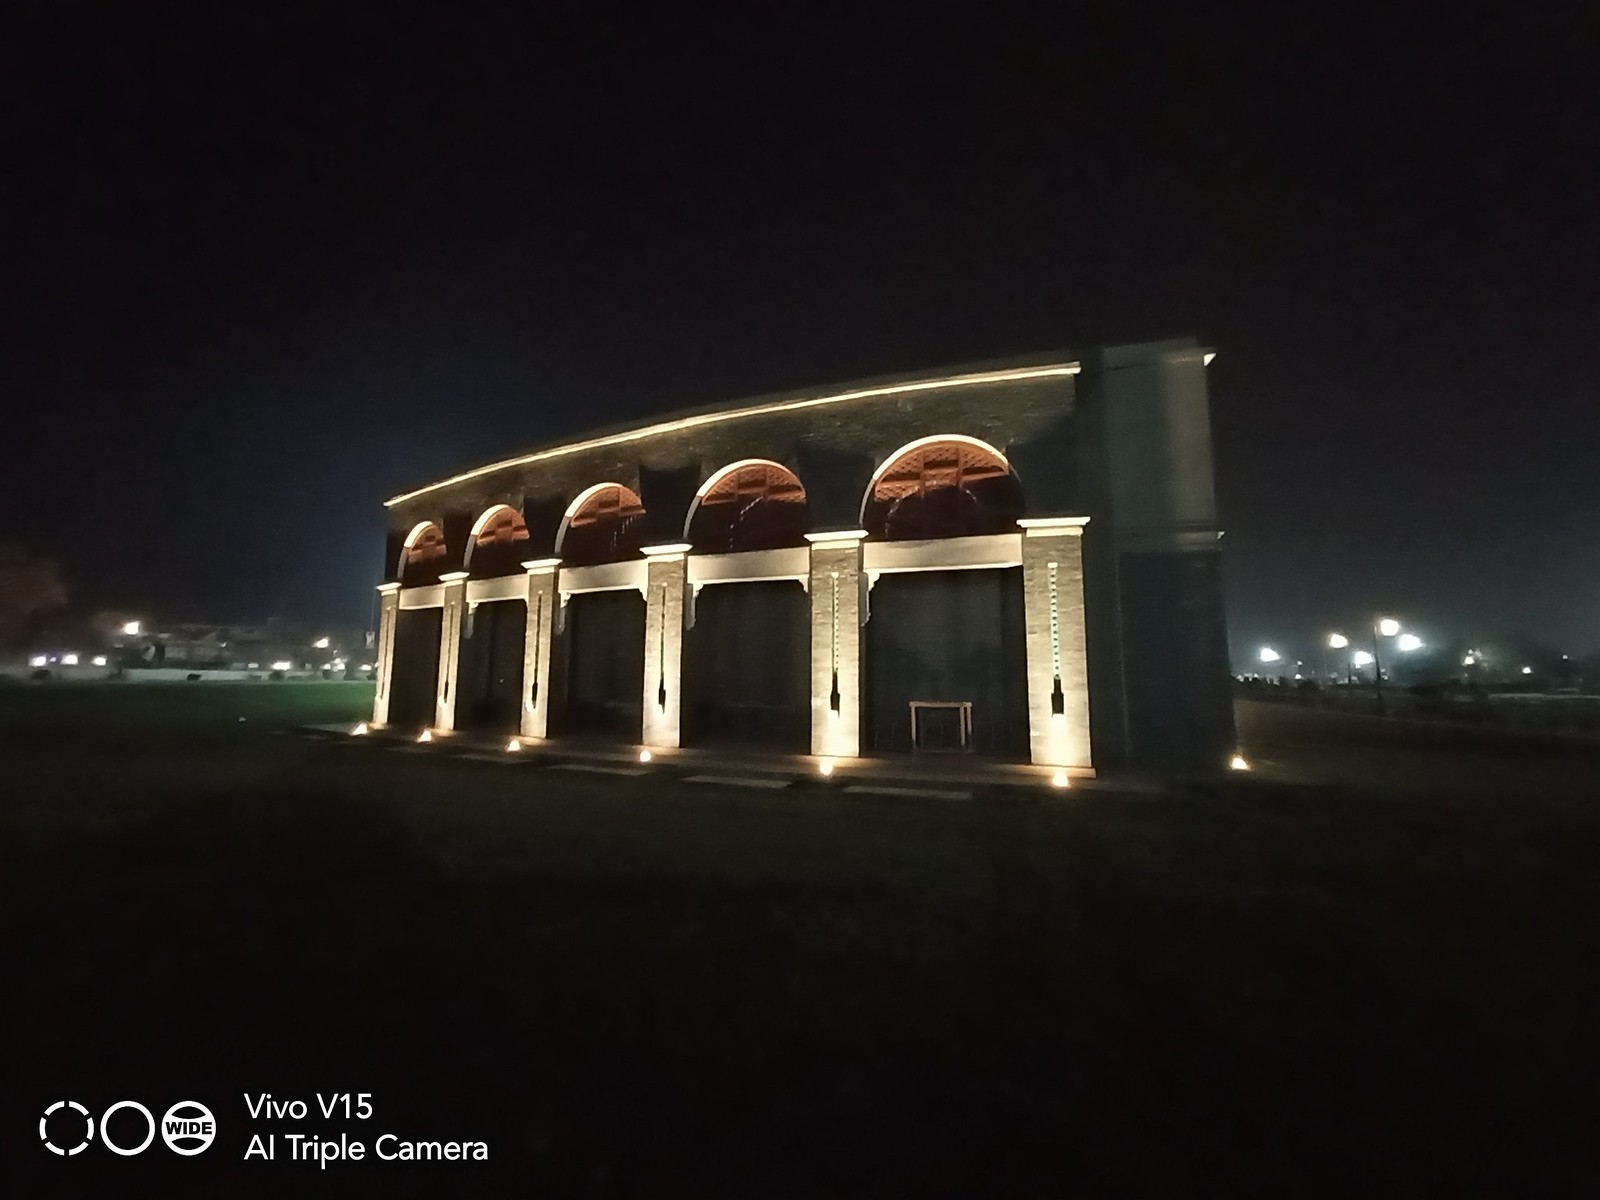 Picture at night with Wide Angle Lens on Vivo V15